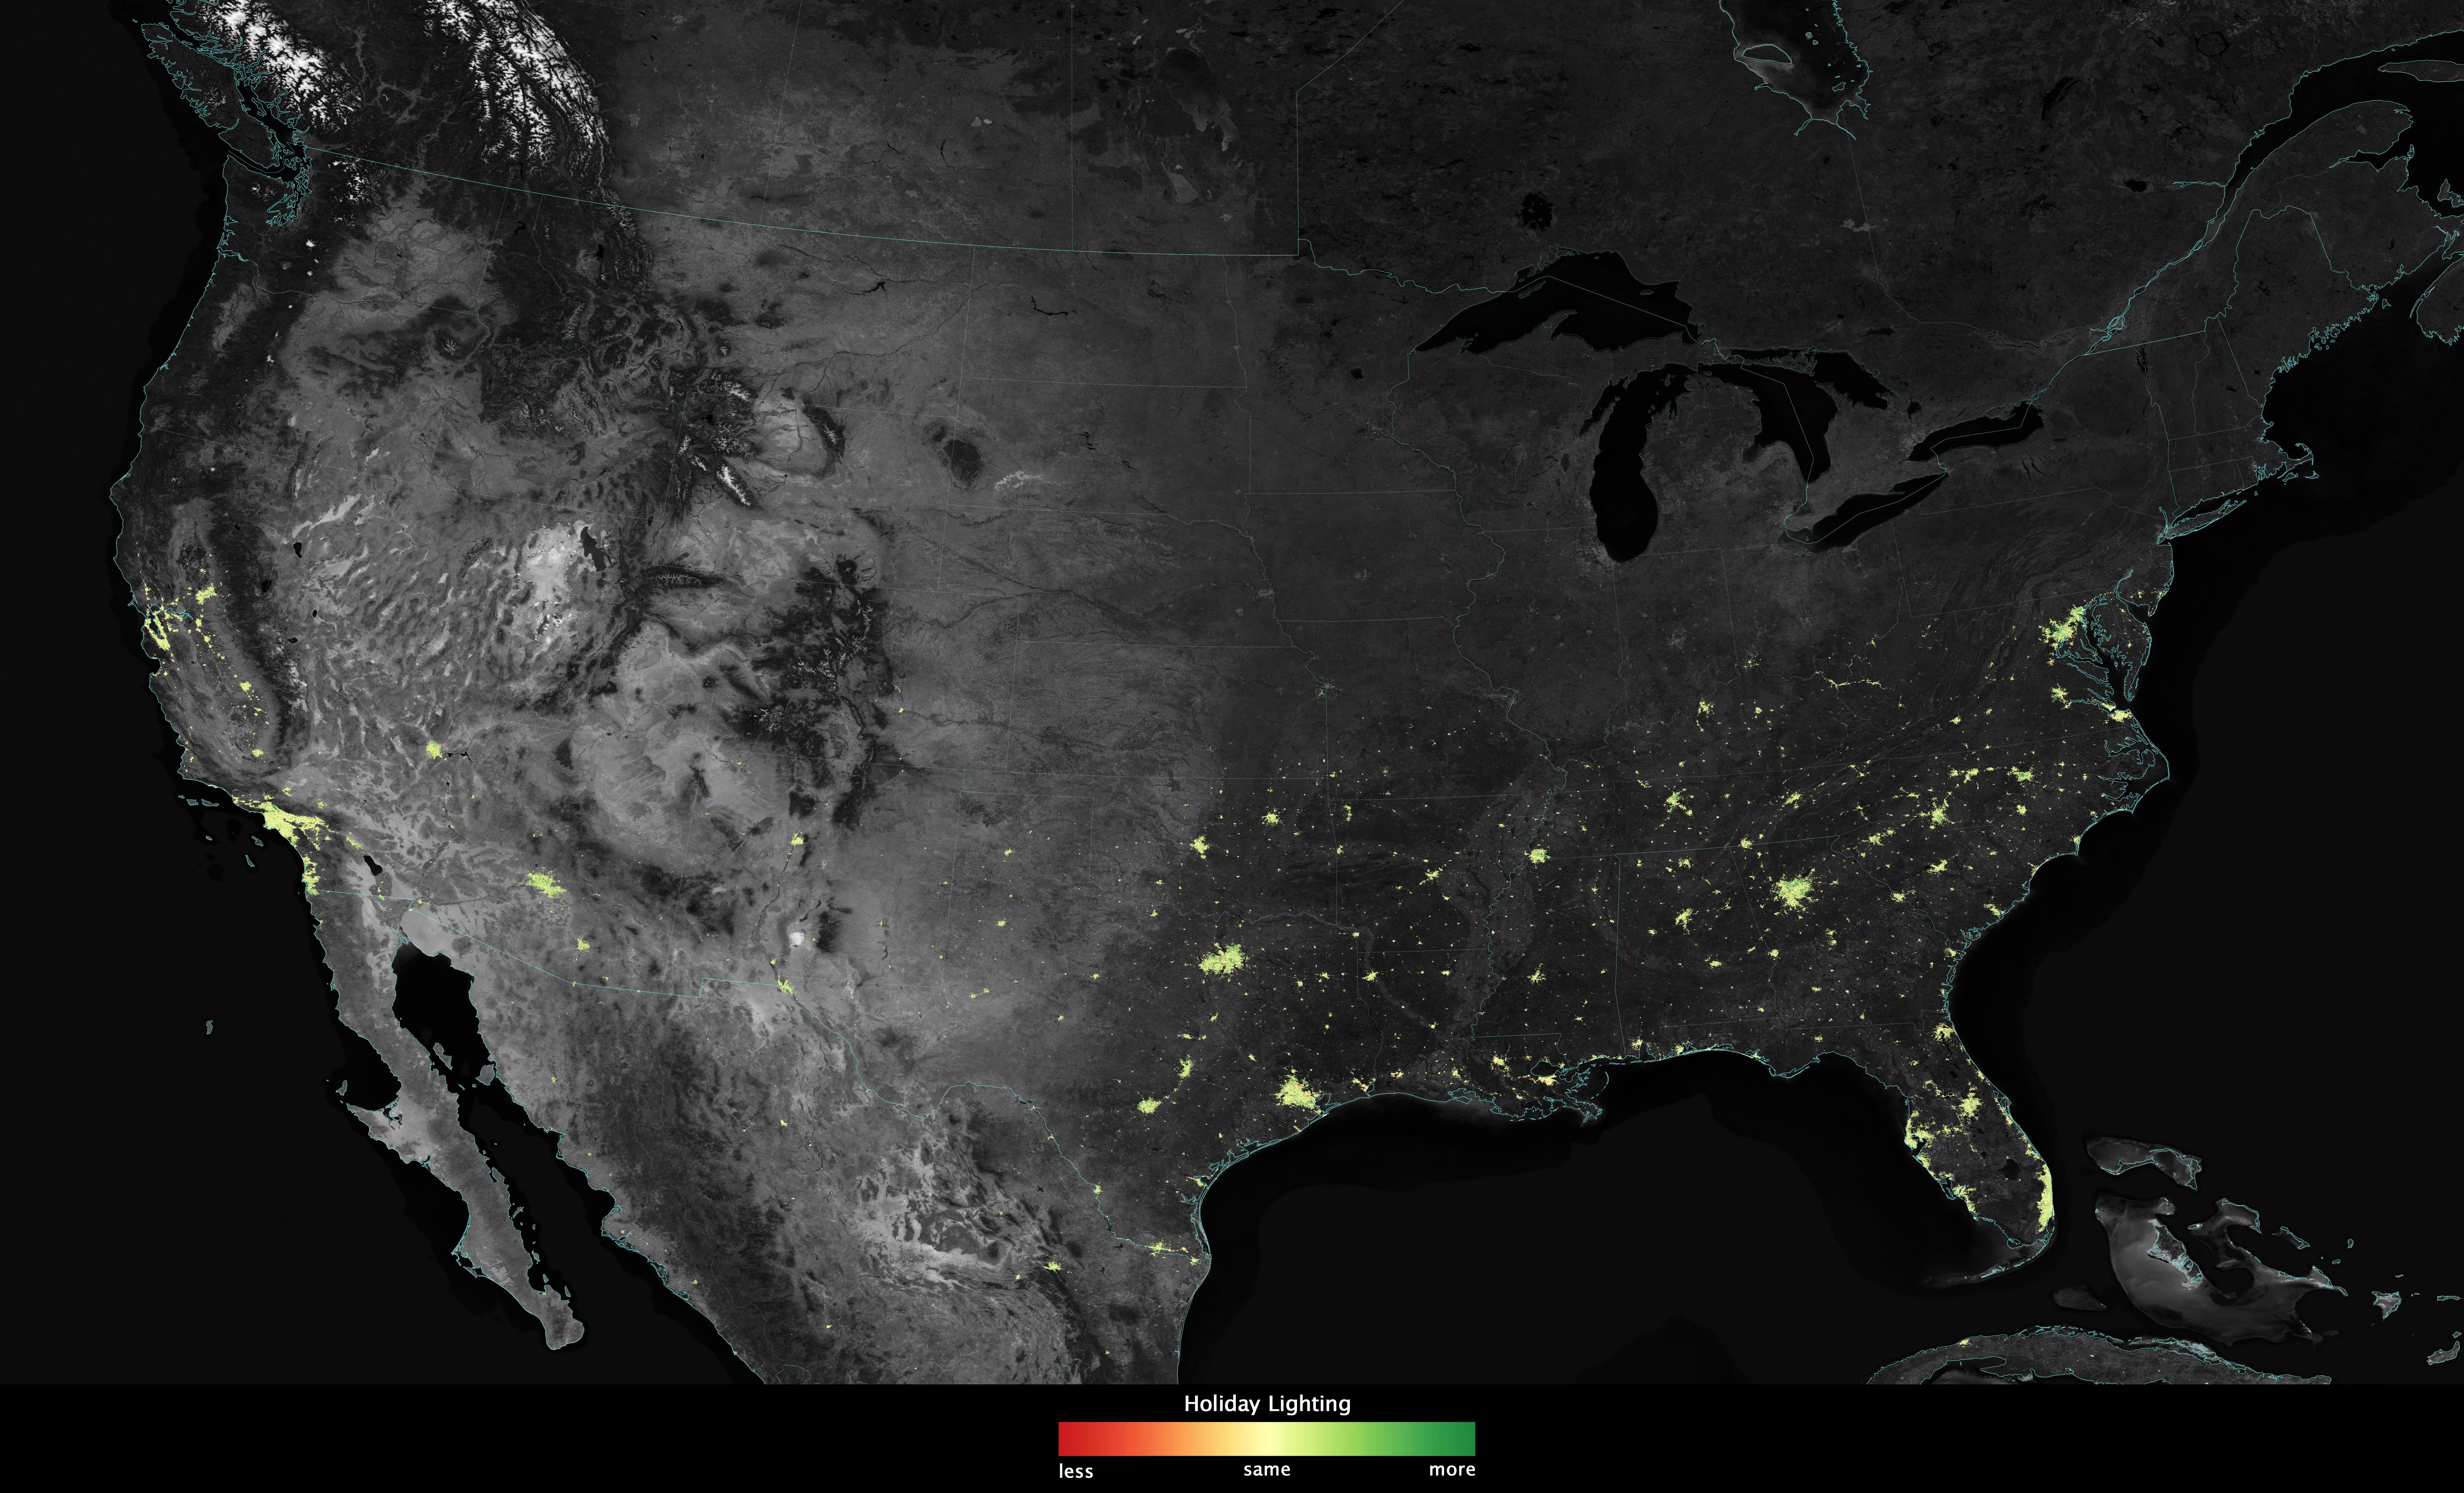 Map of the United States showing an increase in brightness due to holiday lights